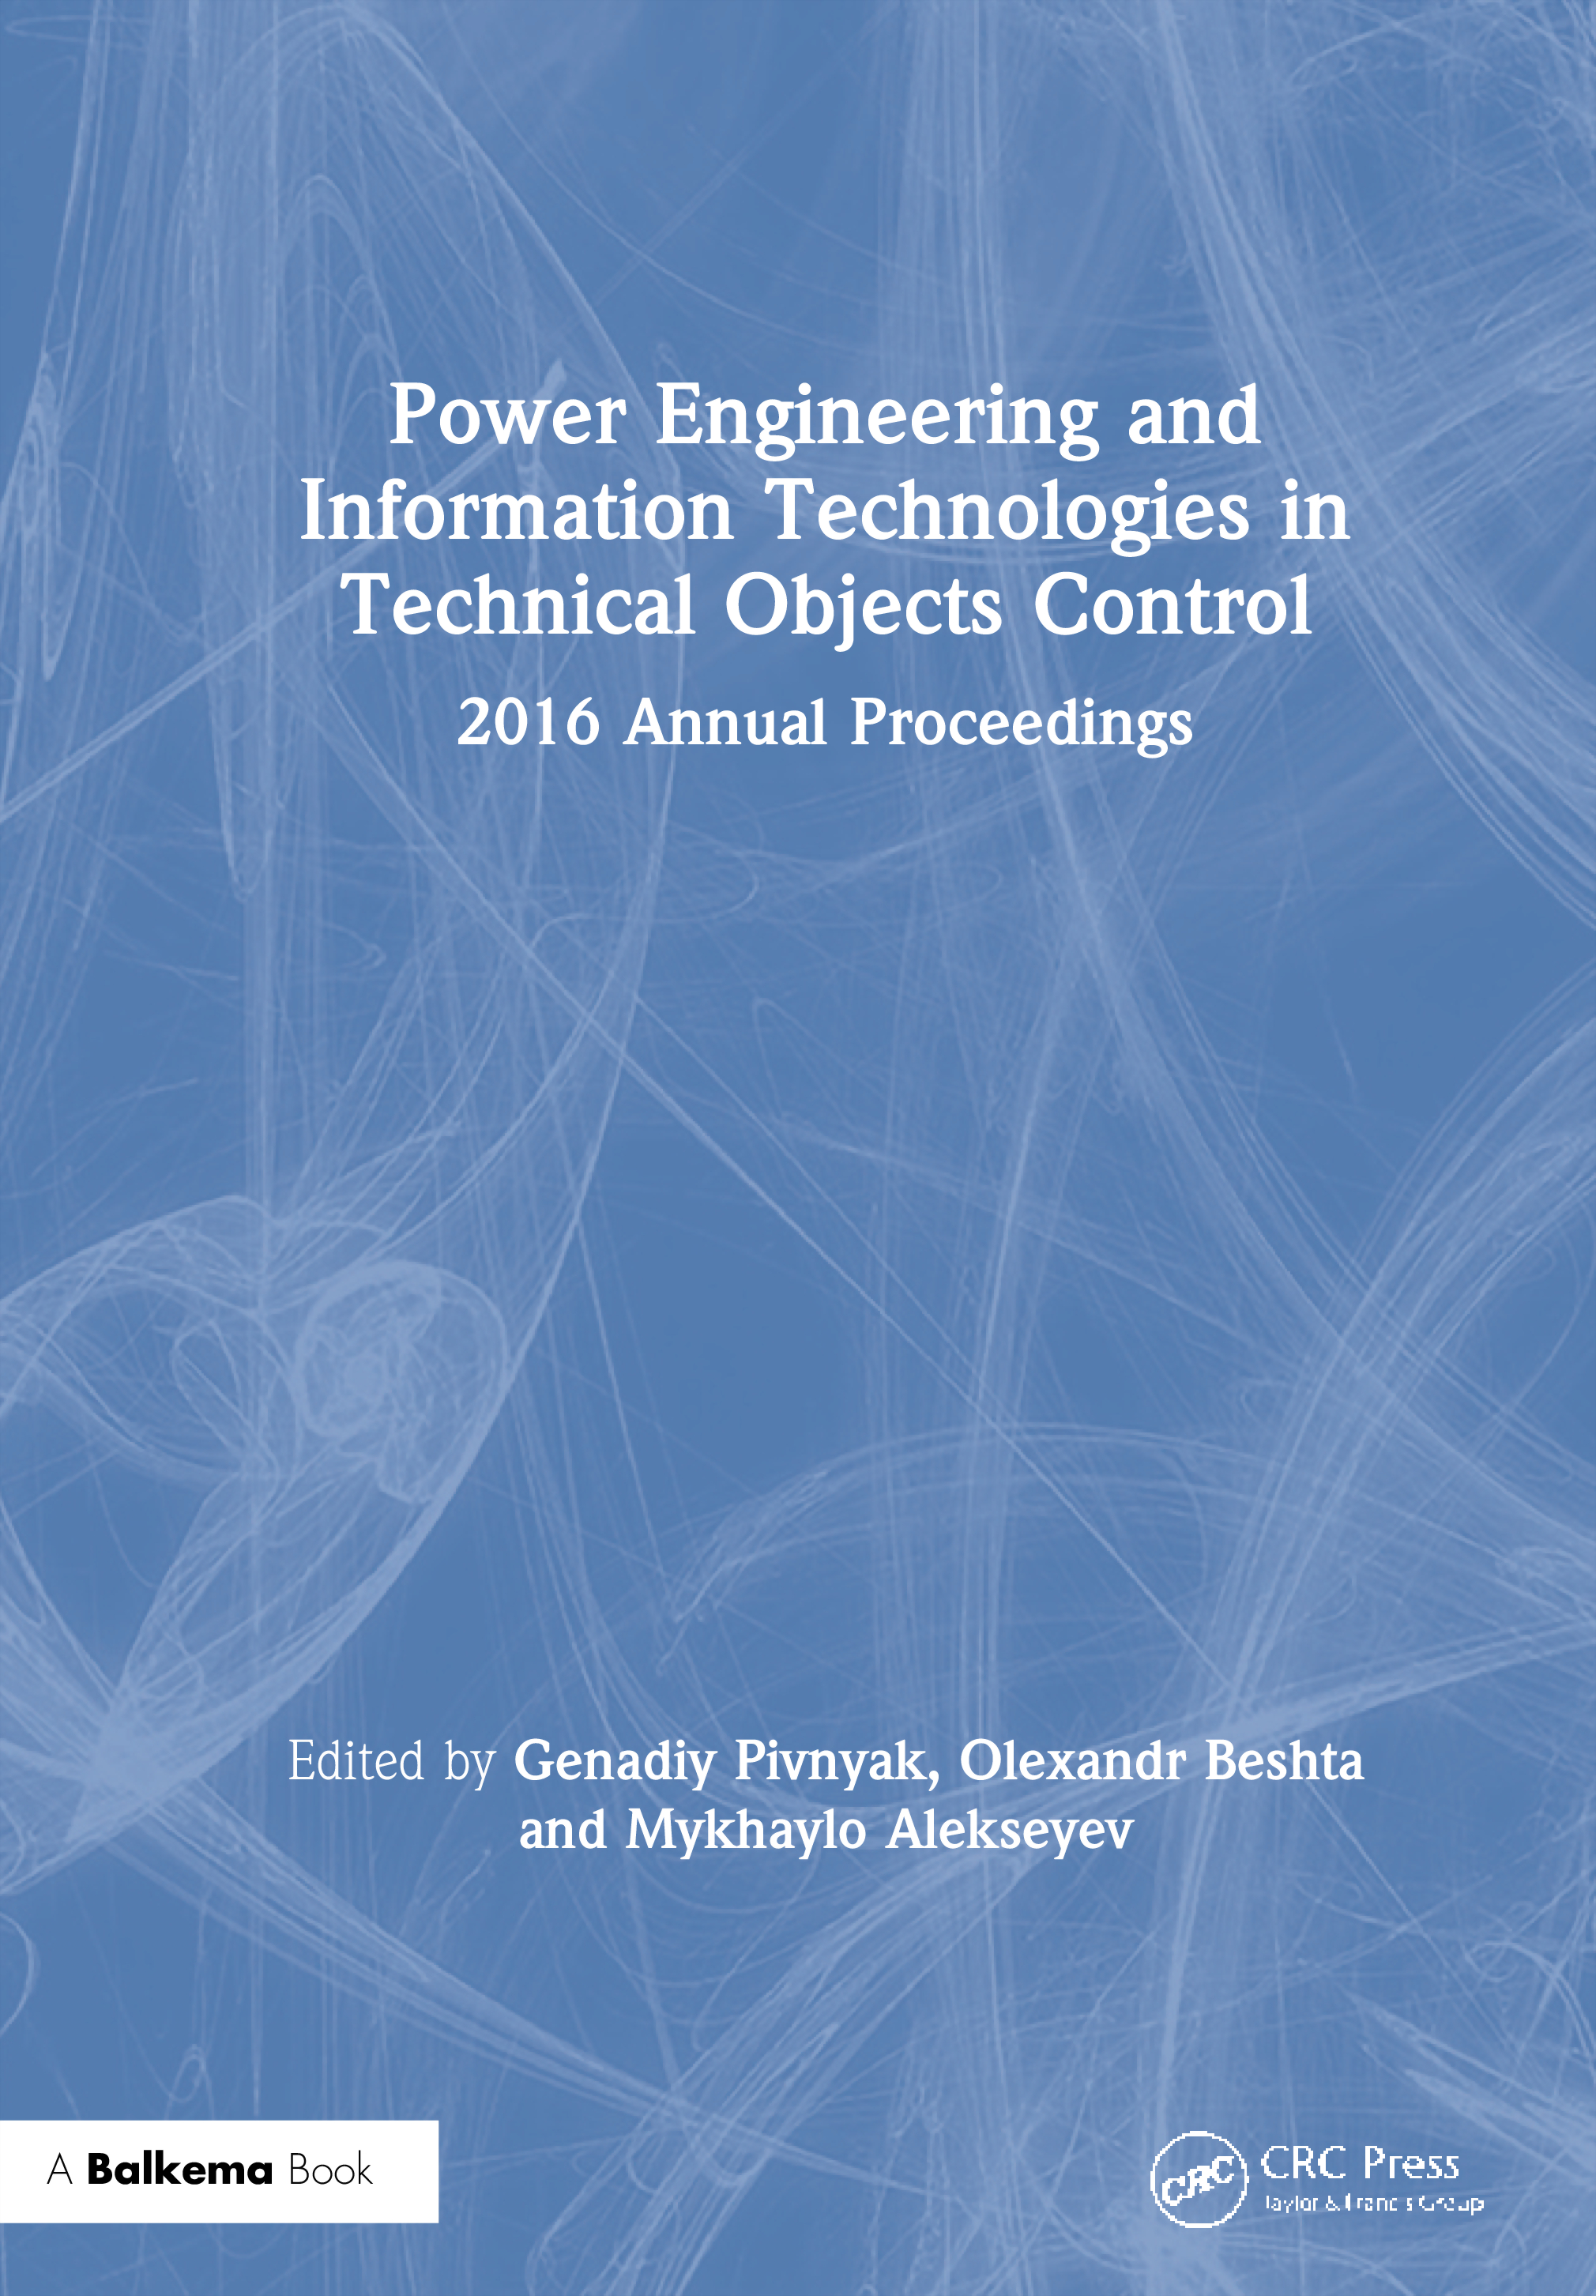 Power Engineering and Information Technologies in Technical Objects Control: 2016 Annual Proceedings, 1st Edition (Hardback) book cover